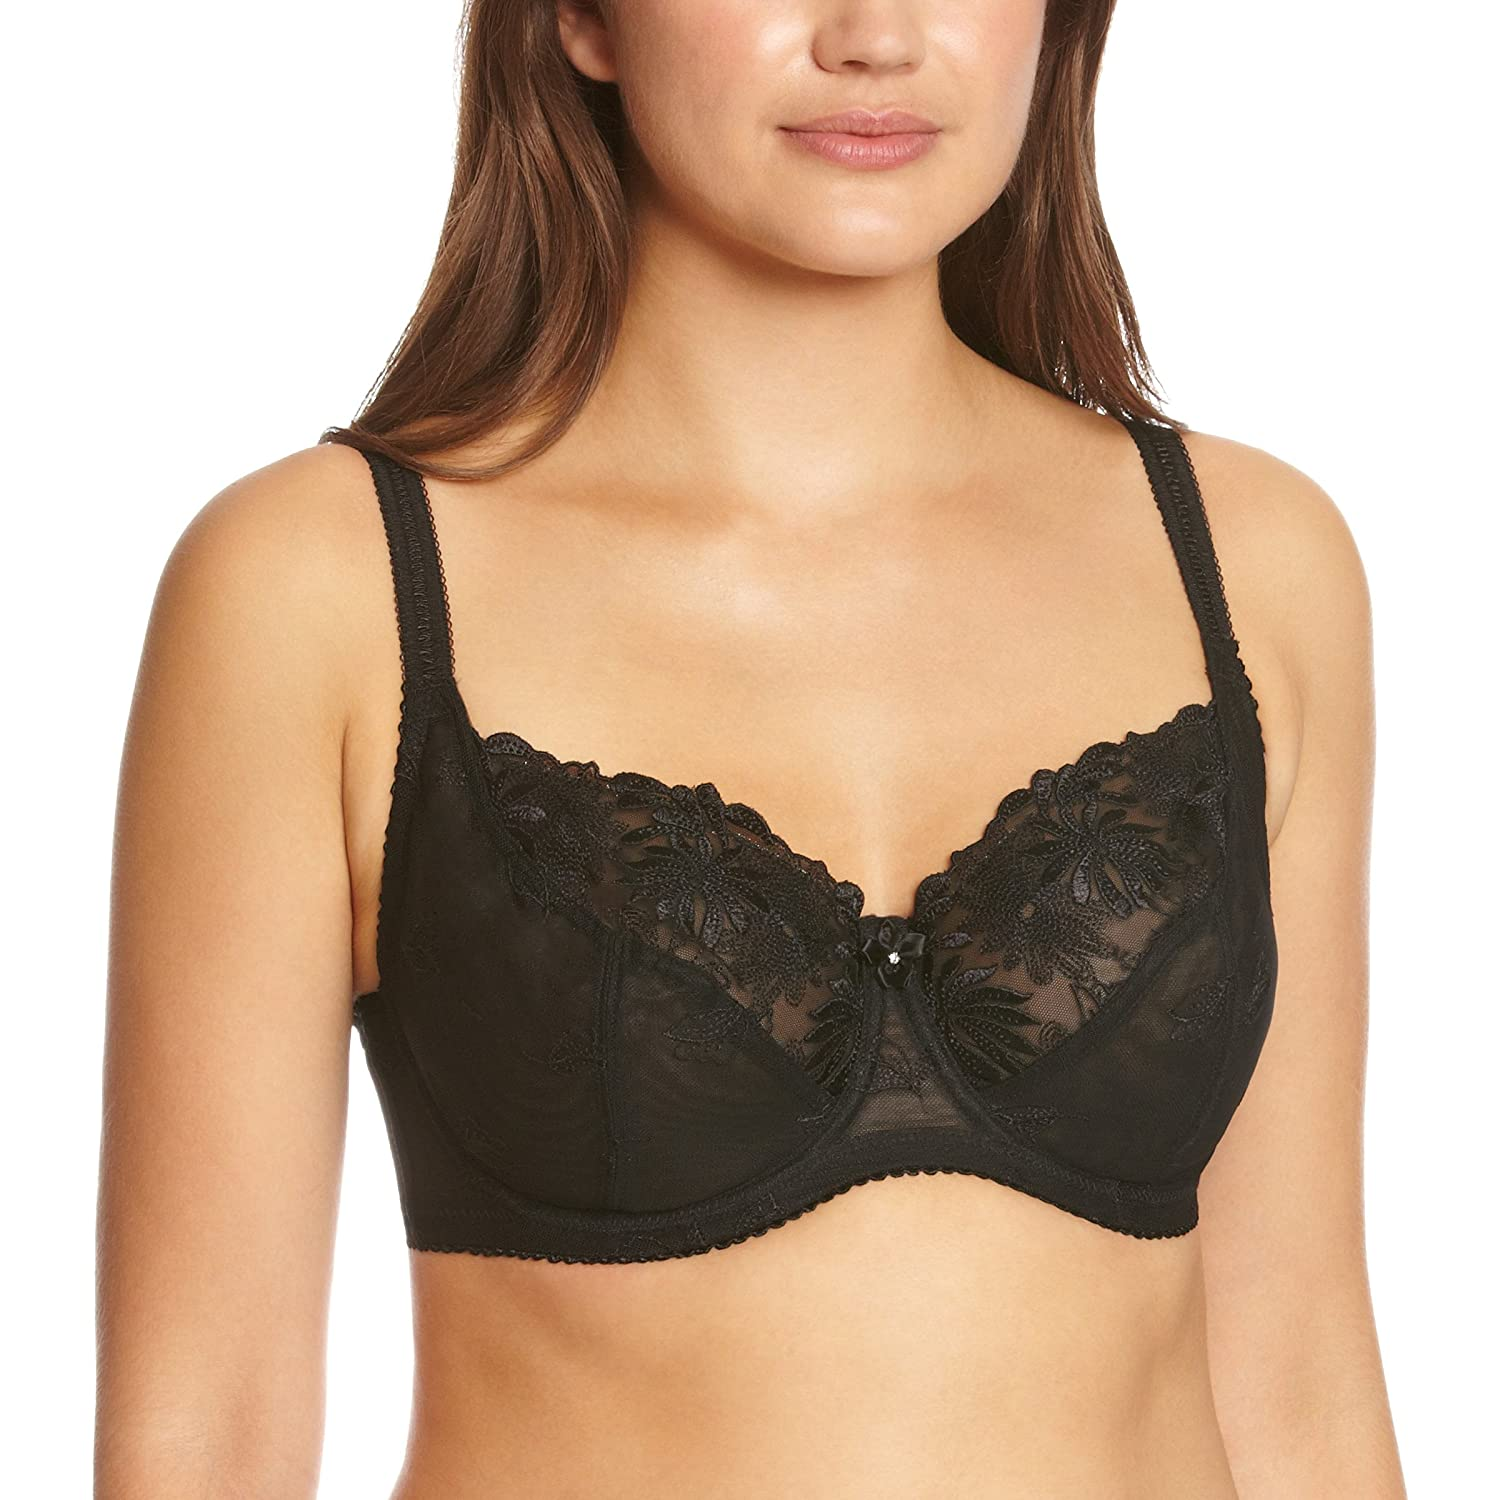 722c4aa1a4 St. Tropez Bra at Amazon Women s Clothing store